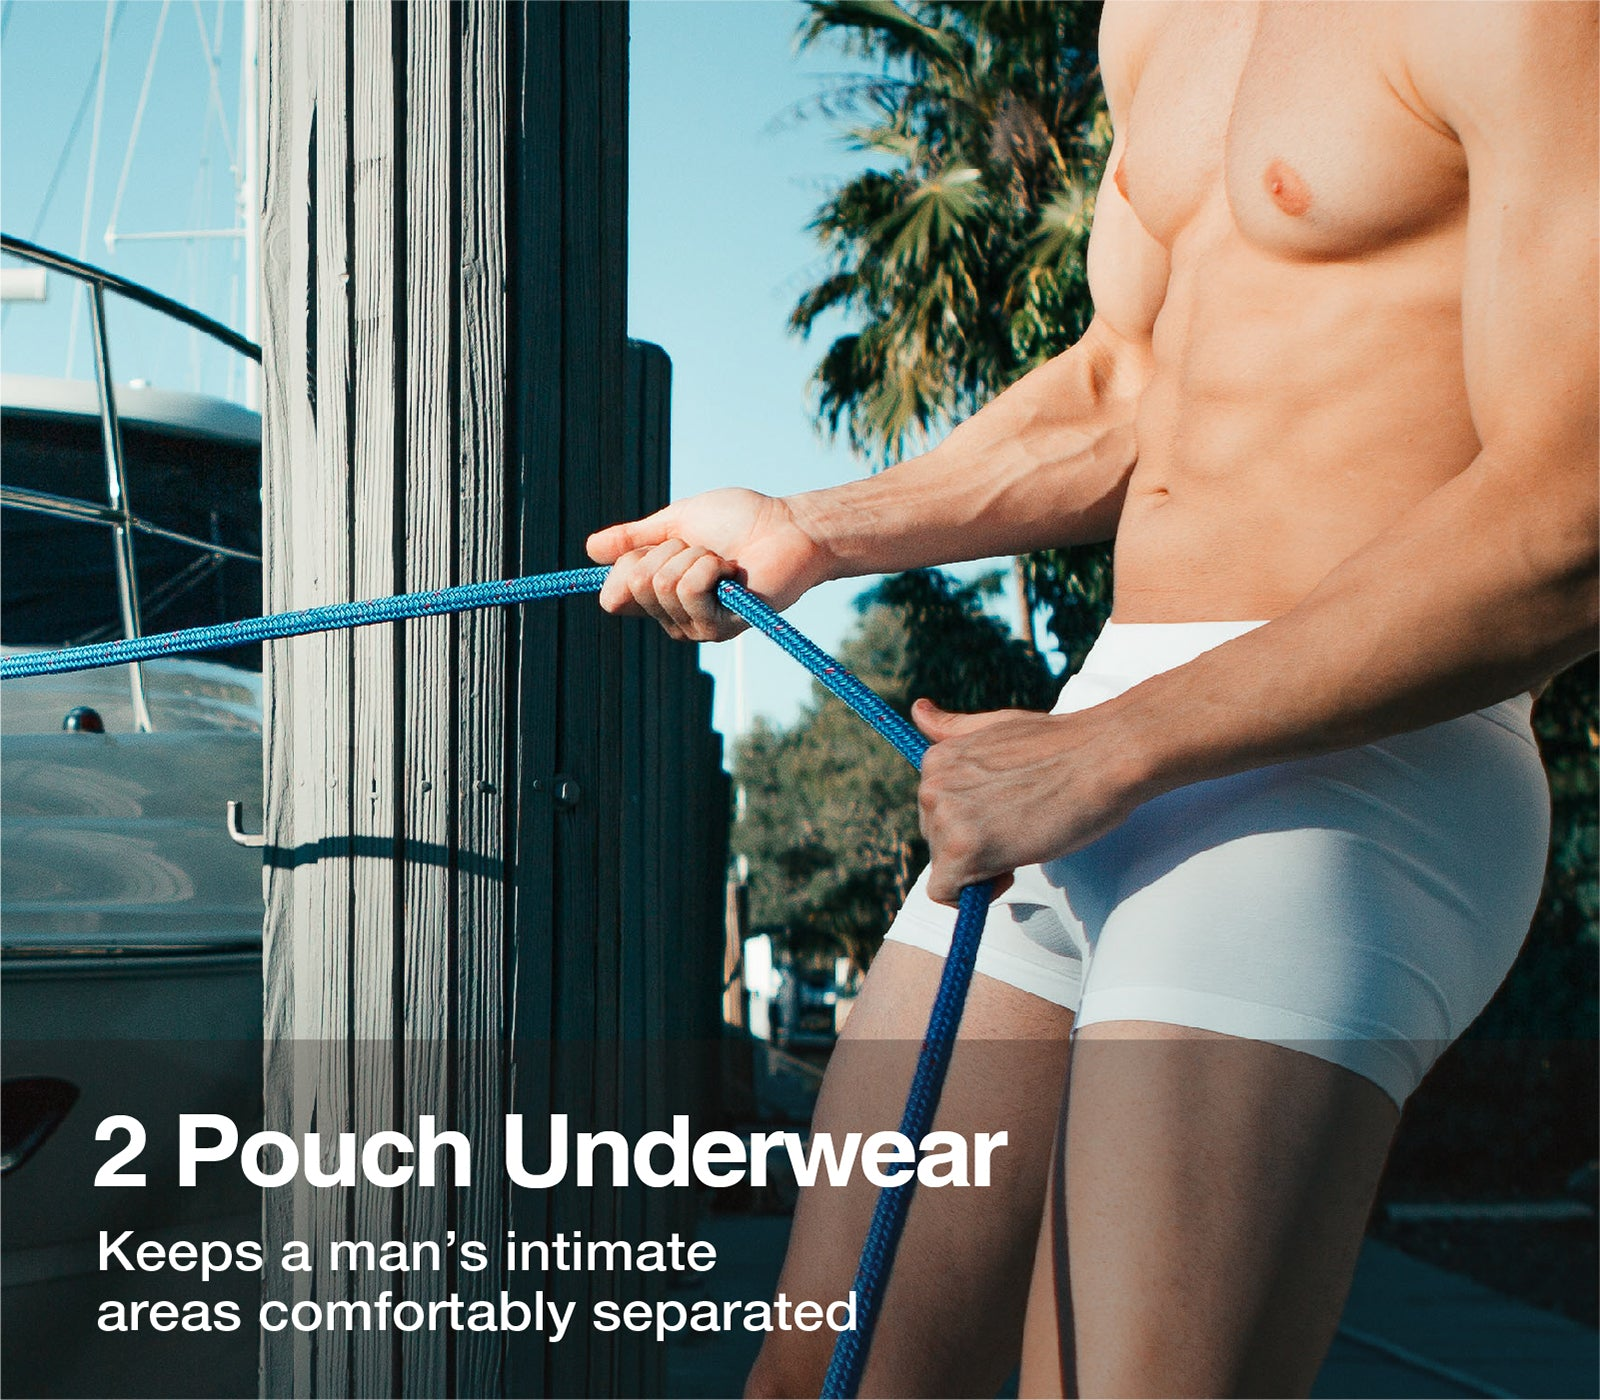 Separatec 2 Pouch underwear, Innovative Daul Pouch Patent Technology